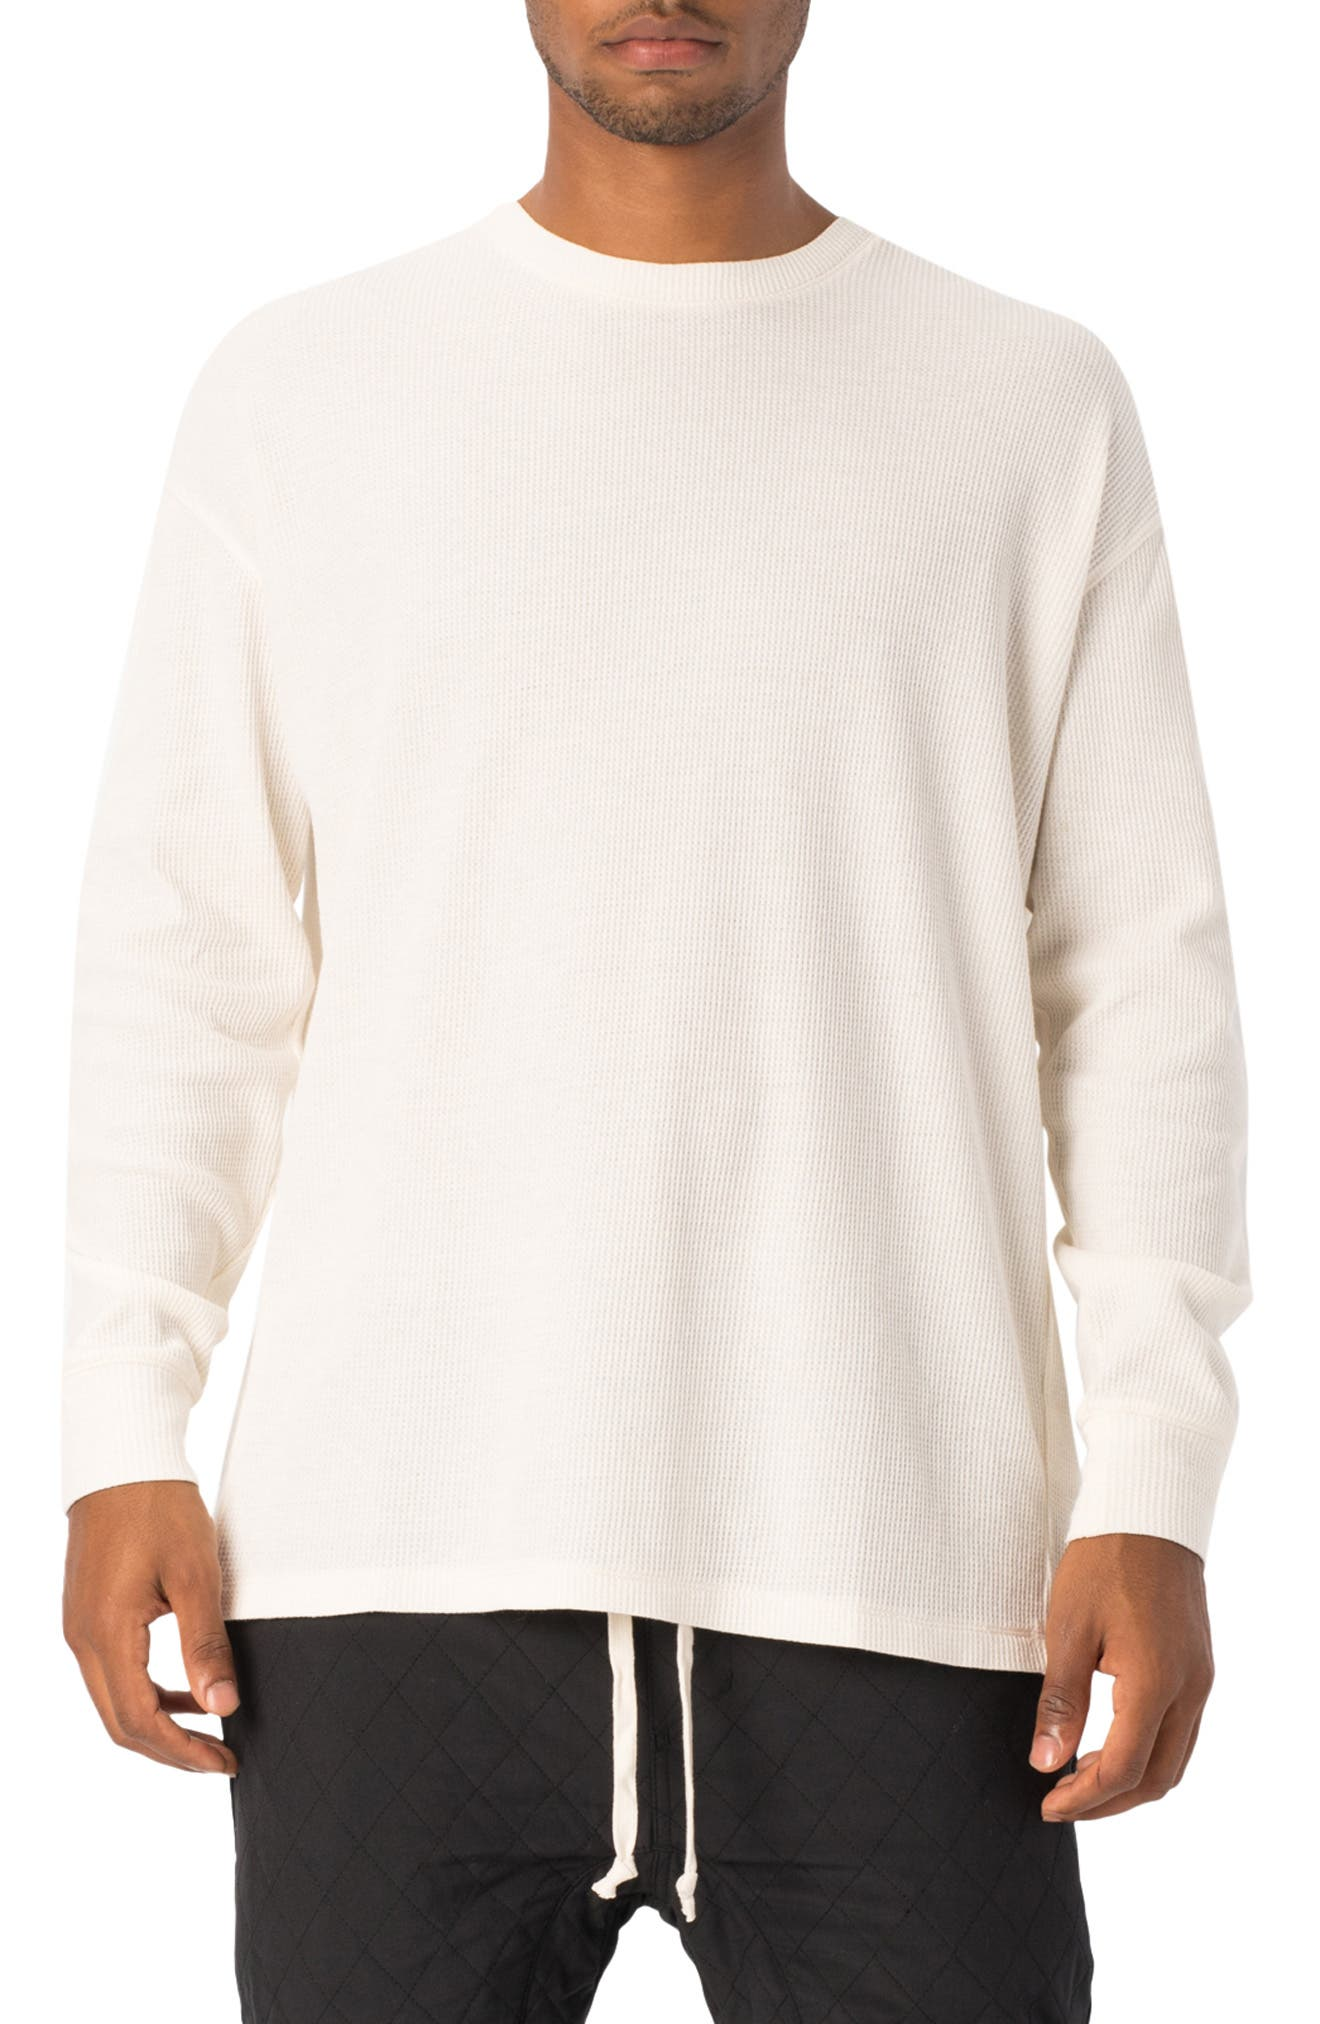 Rugger Waffle Knit Long Sleeve T-Shirt,                             Main thumbnail 1, color,                             BONE